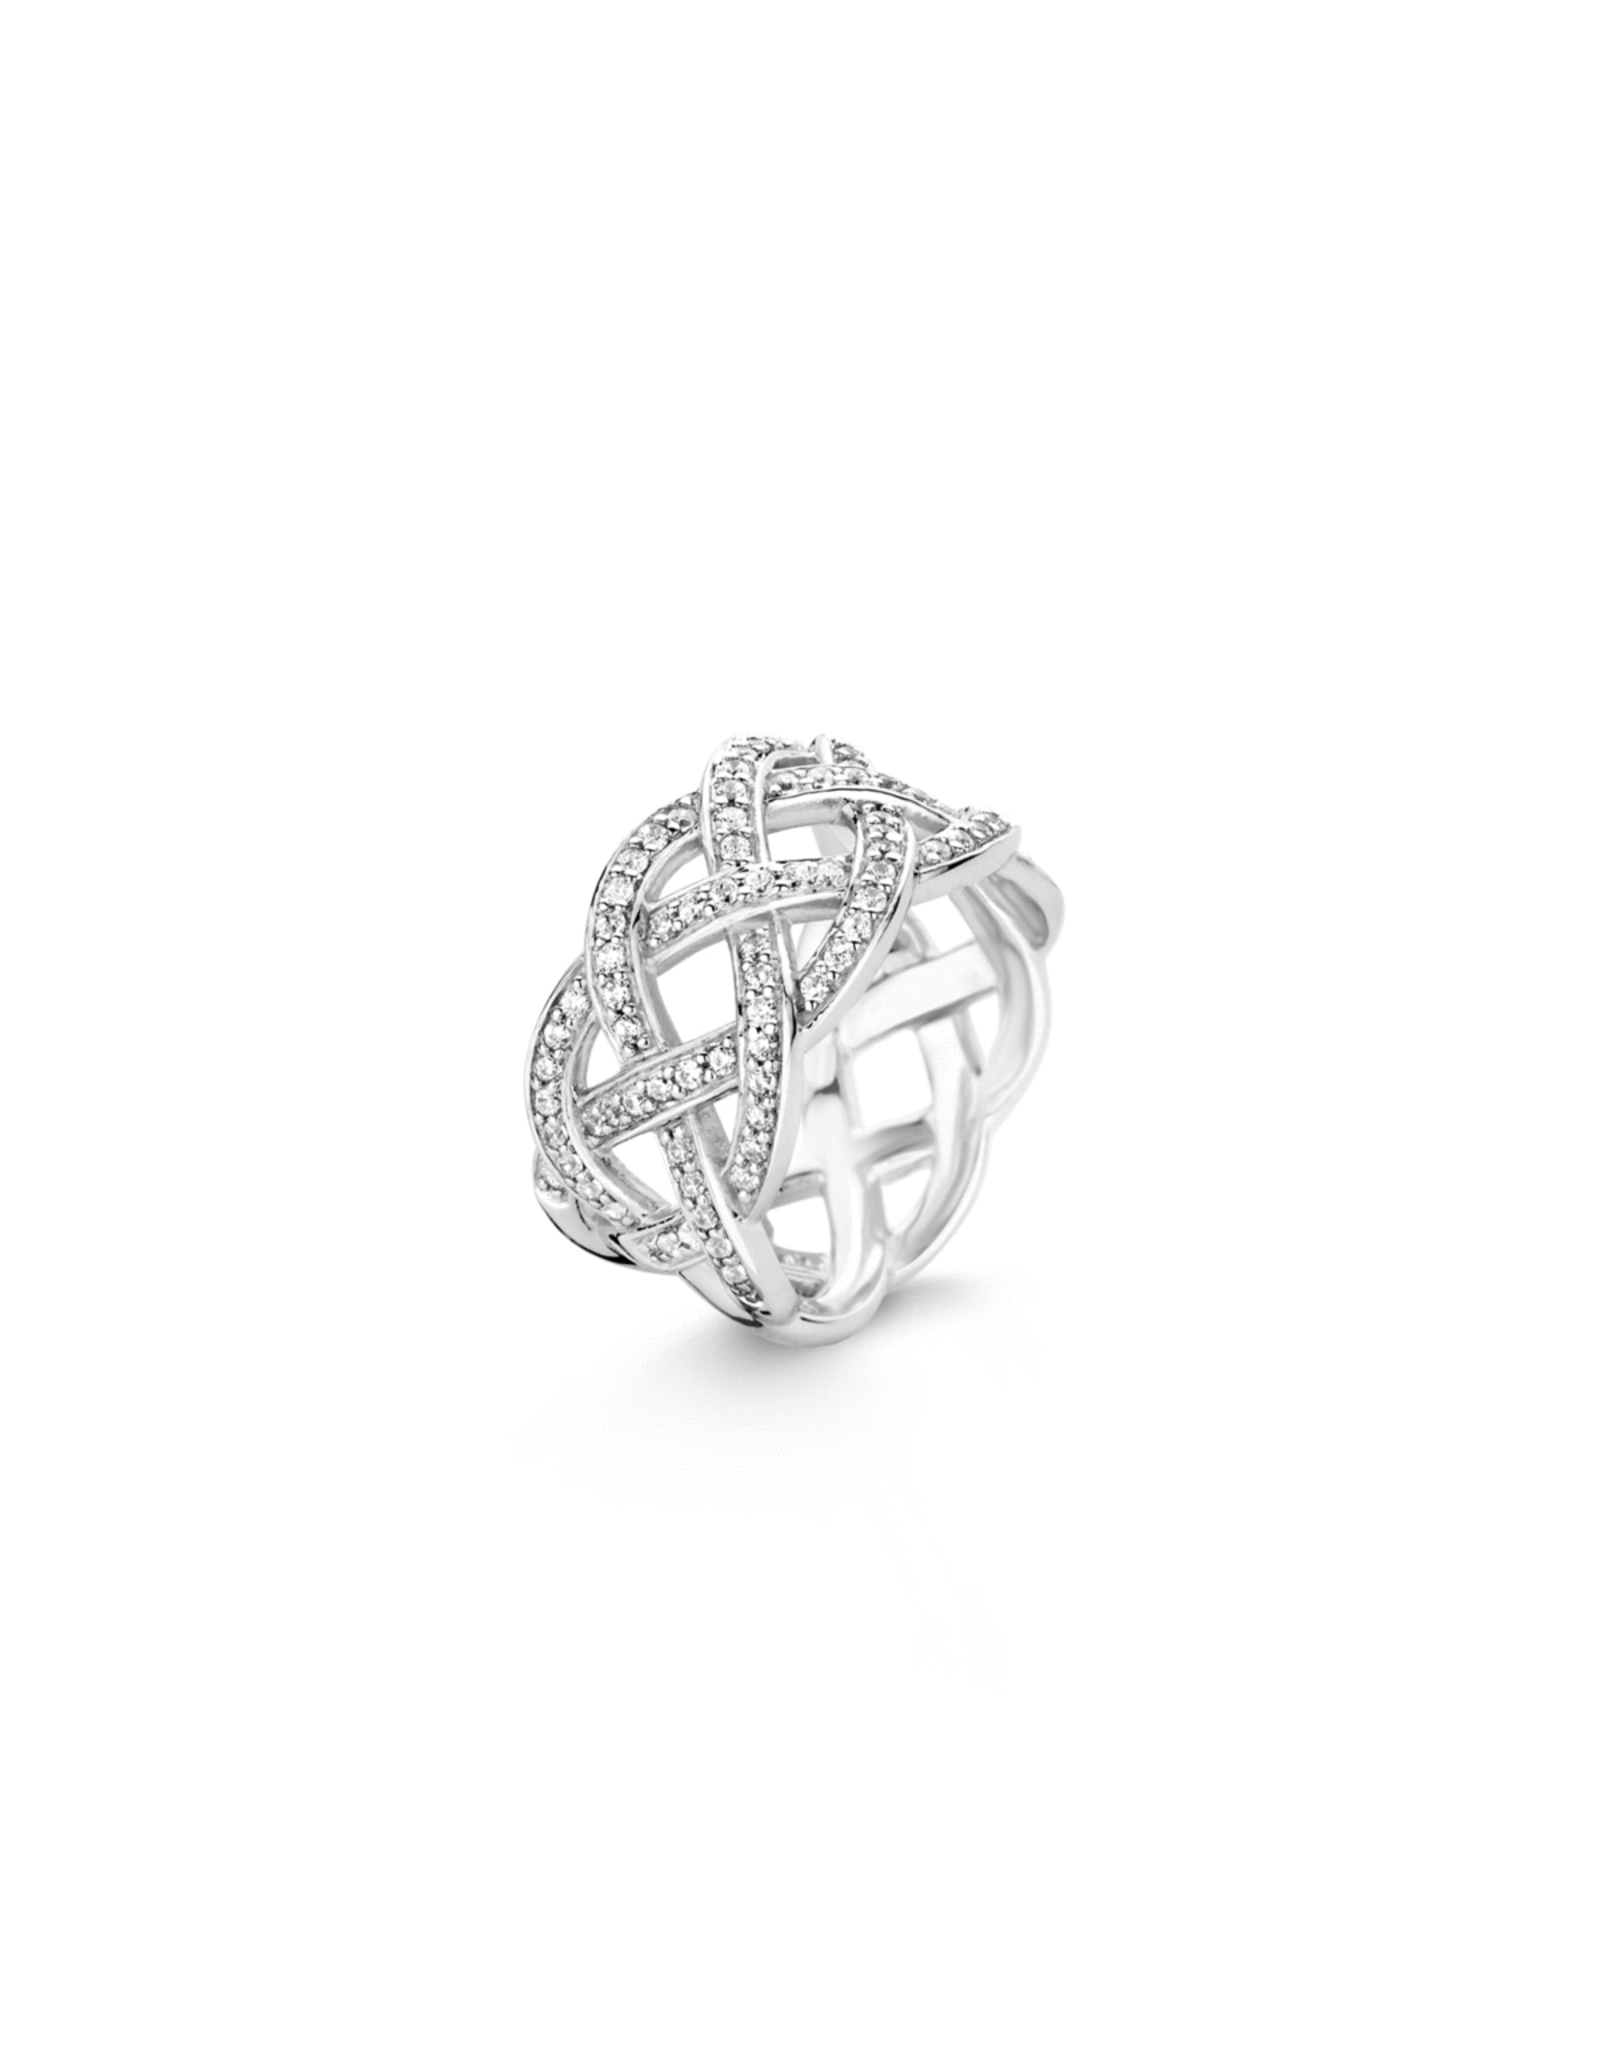 Silver Interlaced Ring with Zirconias - 12026ZI/56